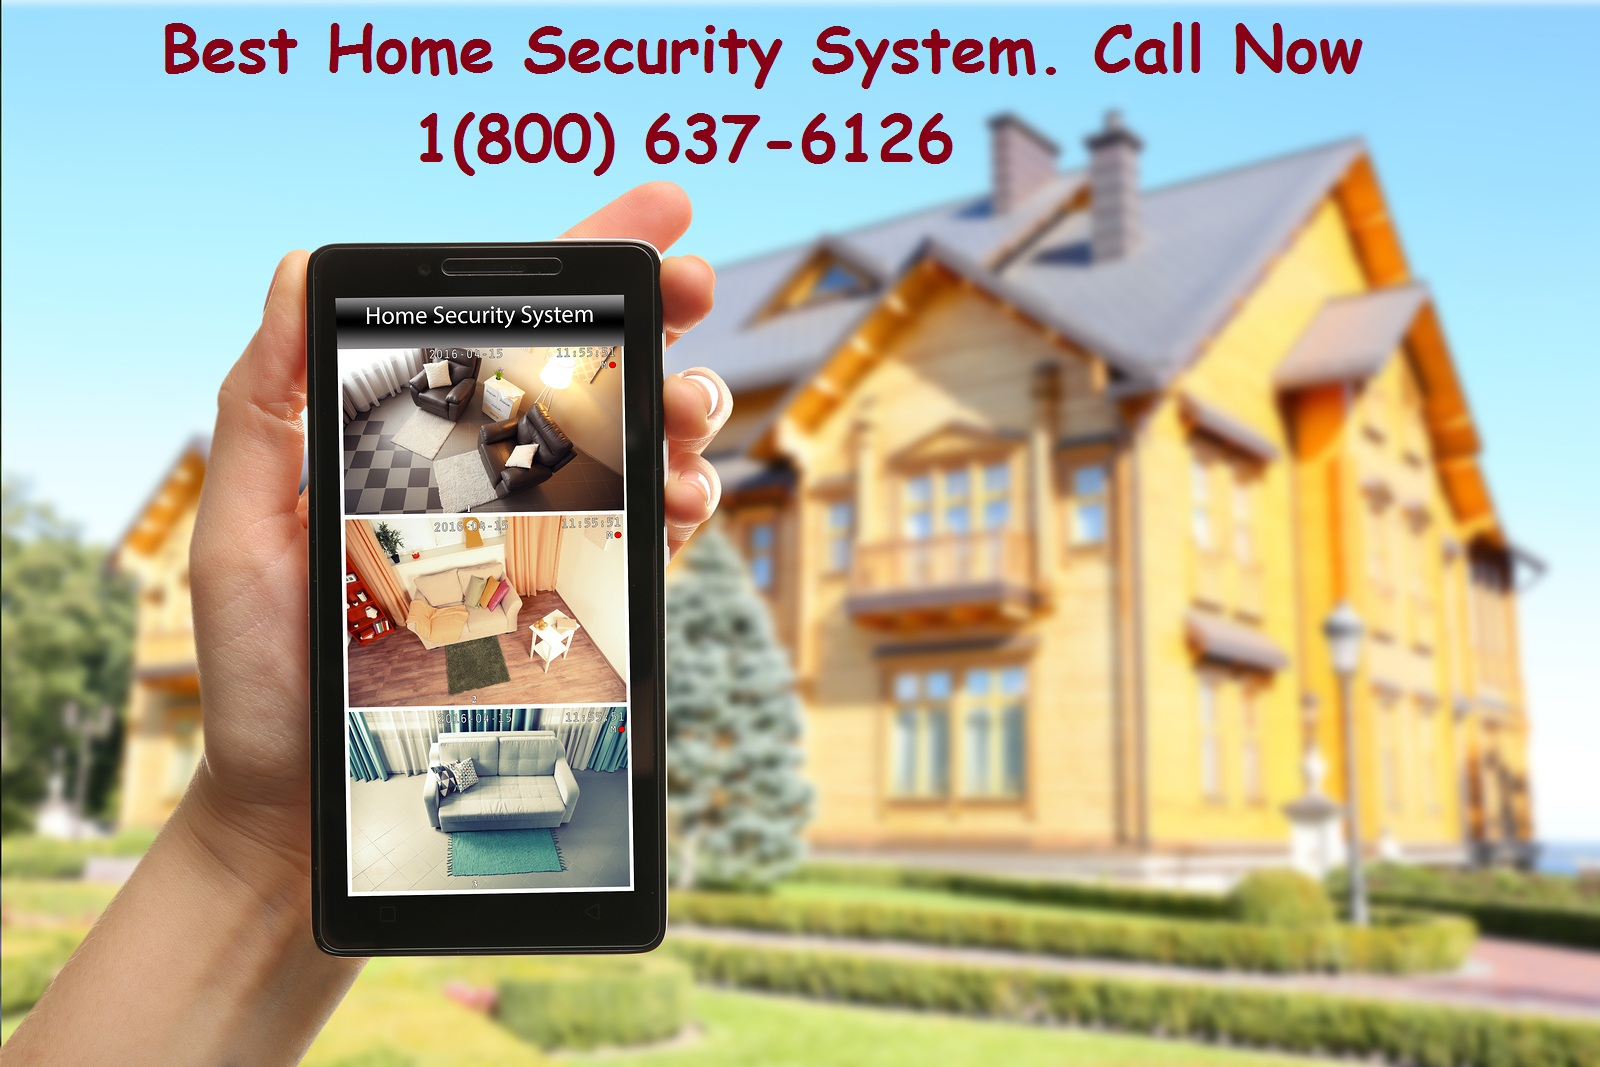 HOME SECURITY 1800-637-6126 LIMITED TIME OFFER FOR NEW CUSTOMERS